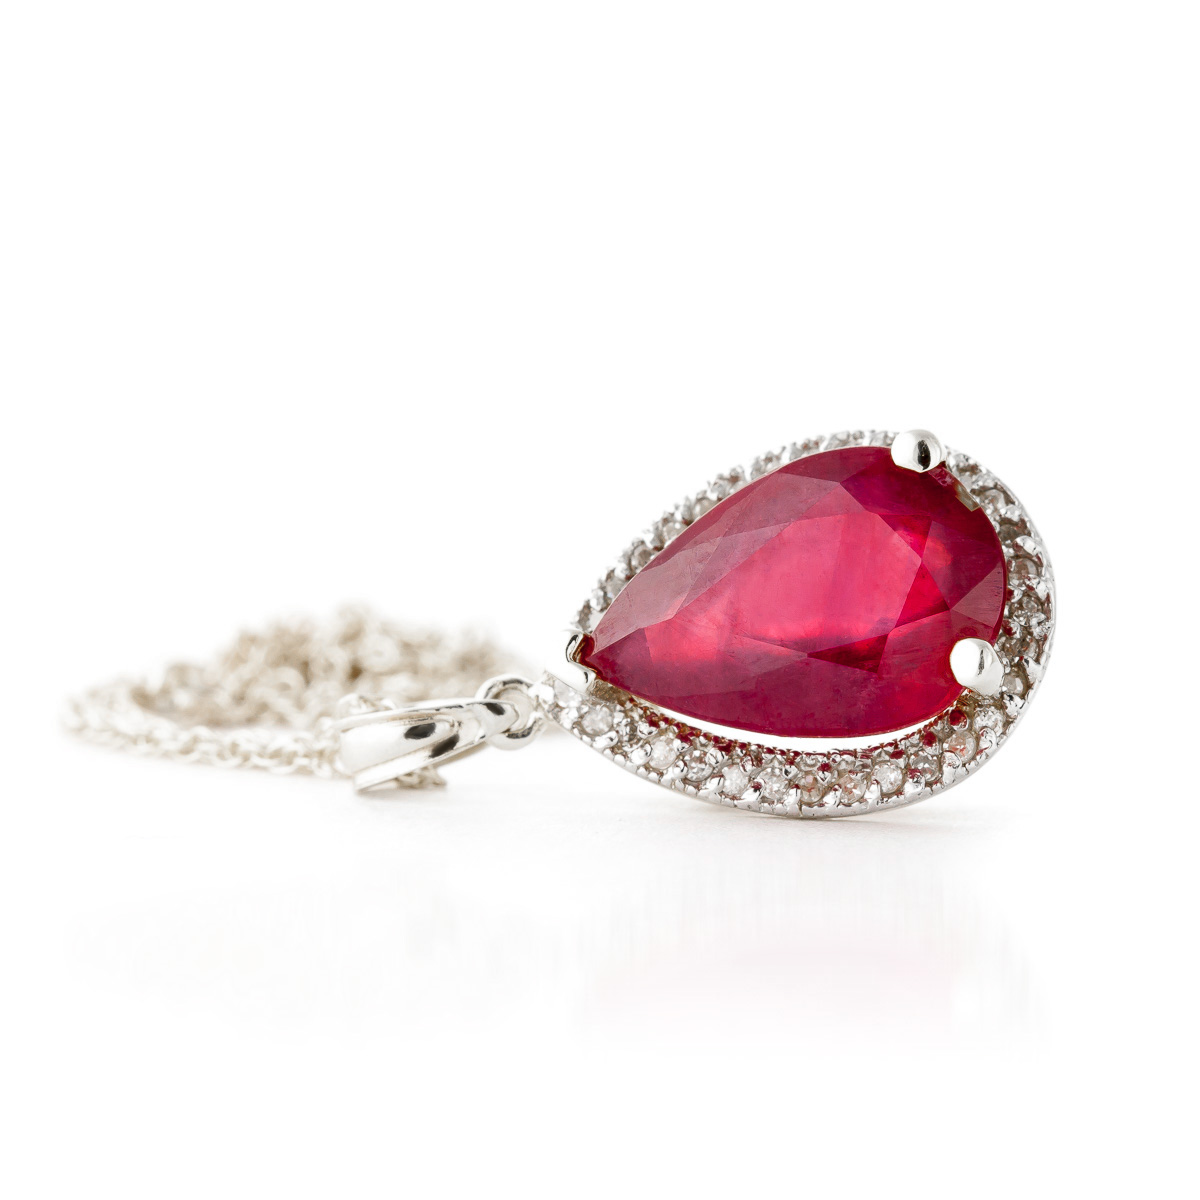 Ruby Halo Pendant Necklace 5.51 ctw in 9ct White Gold